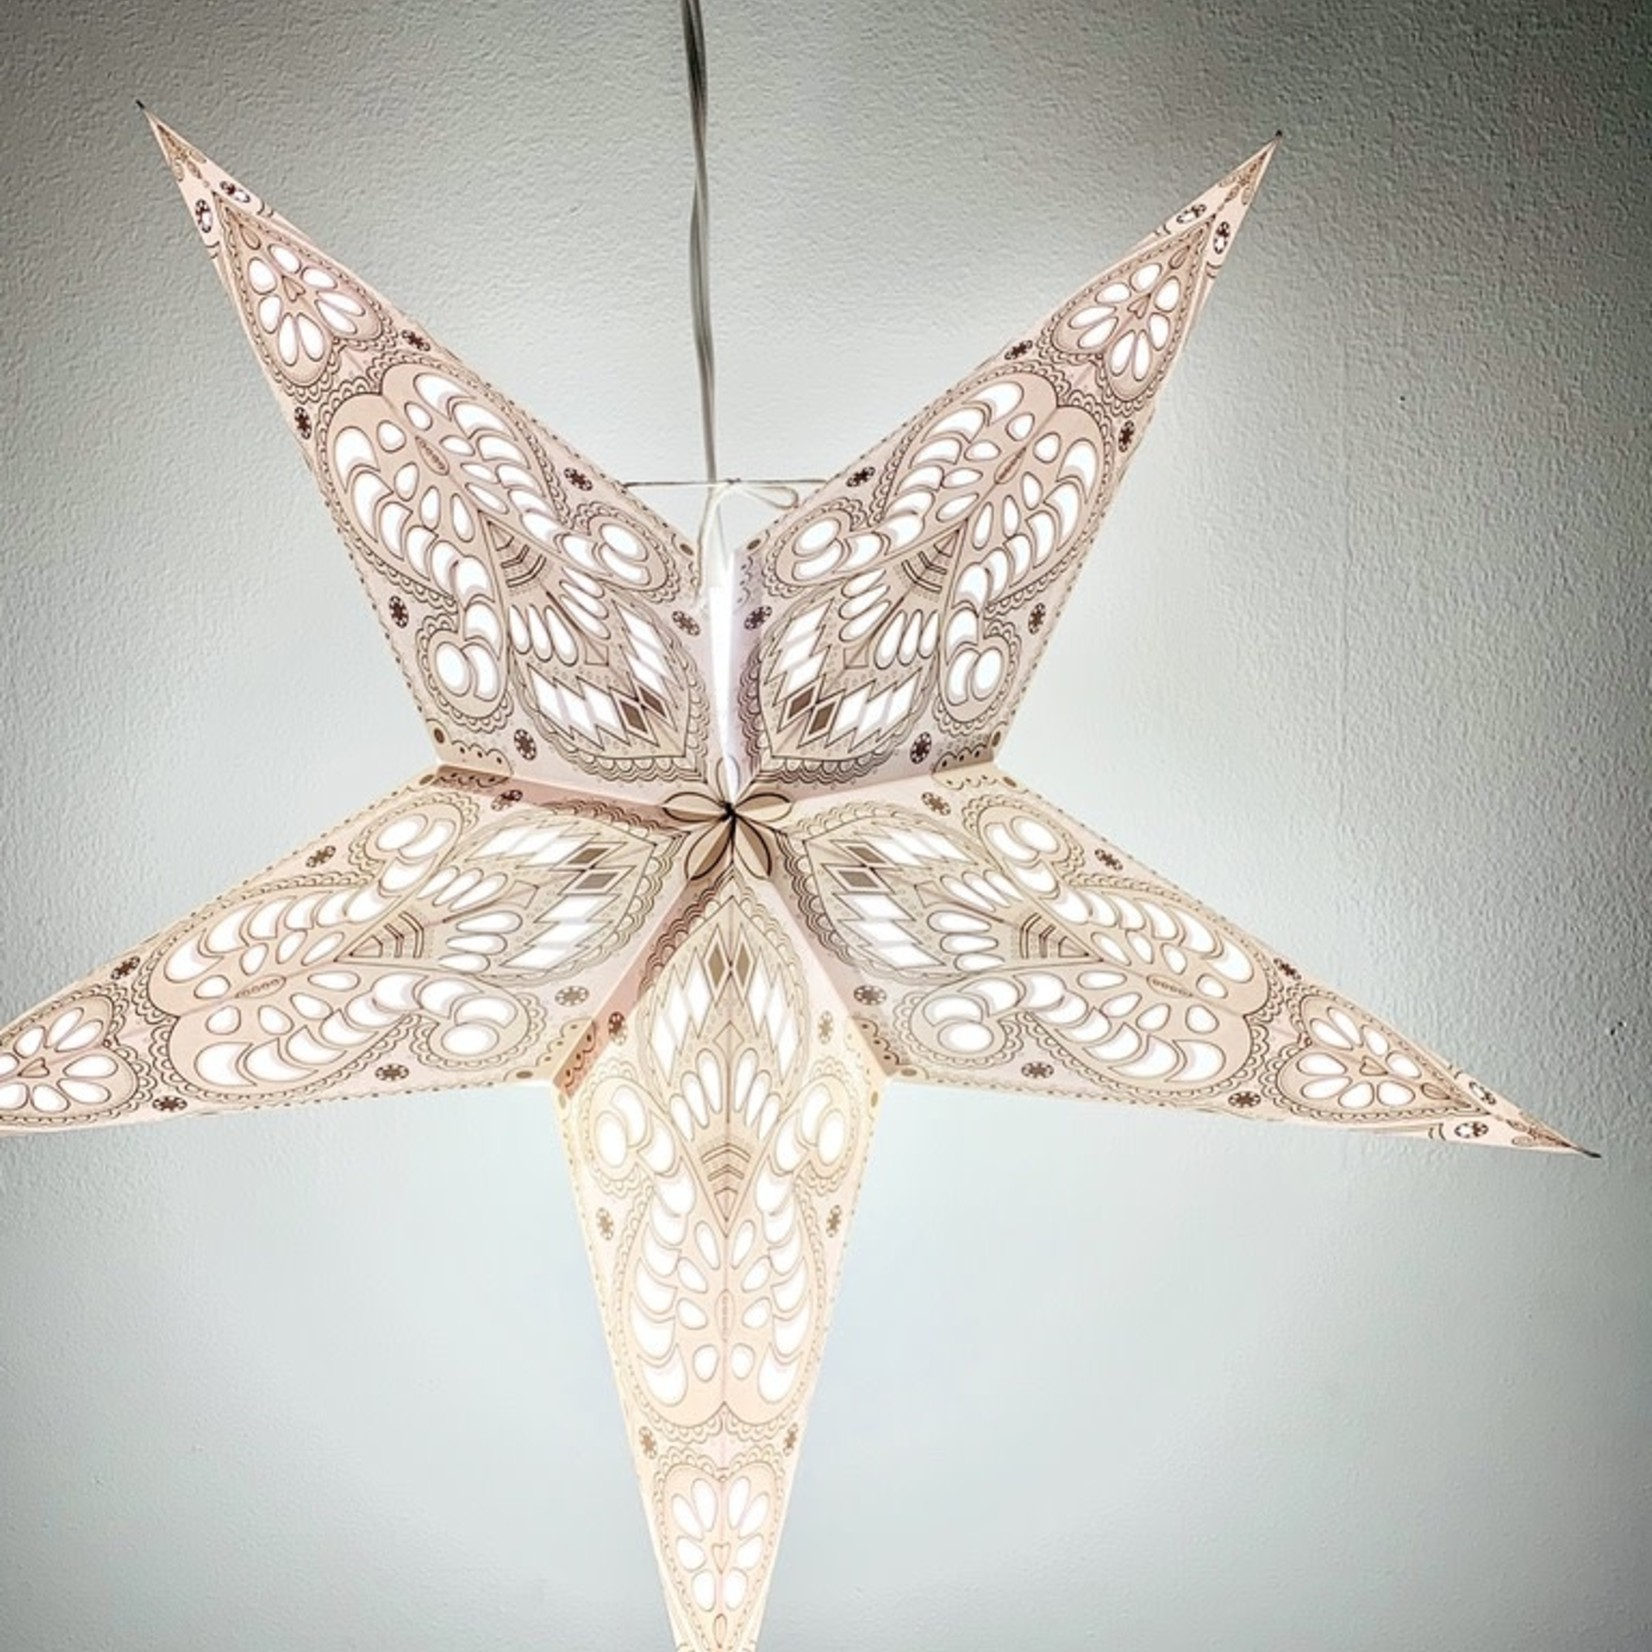 Aquila Star Light with 12' Cord